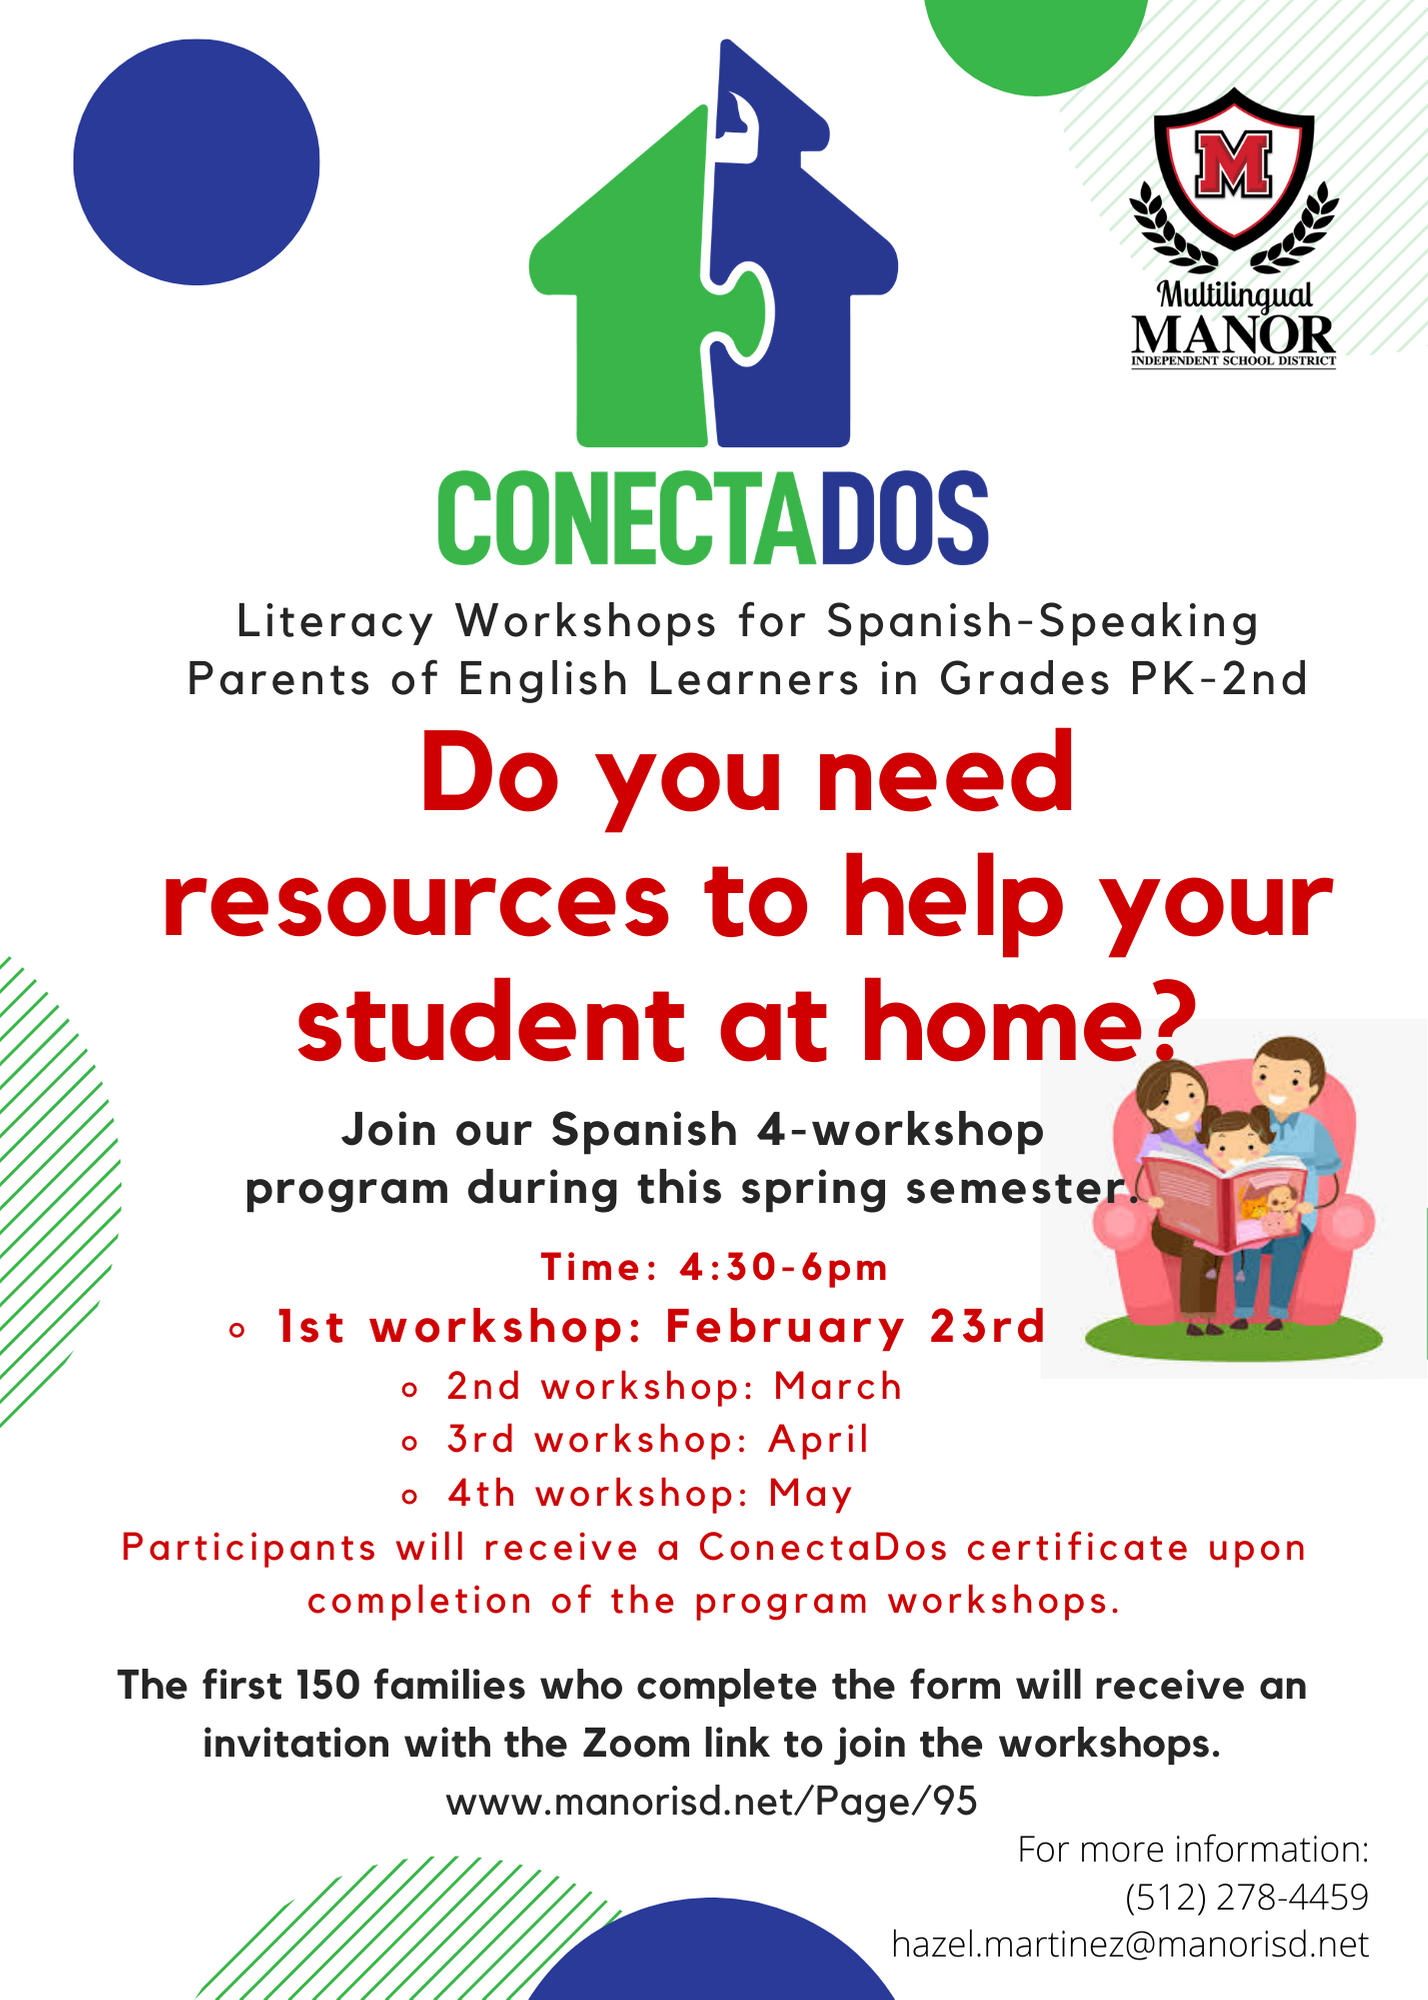 ConectaDos: Literacy Workshops for Spanish-Speaking Parents of English Learners in Pre-K through Se